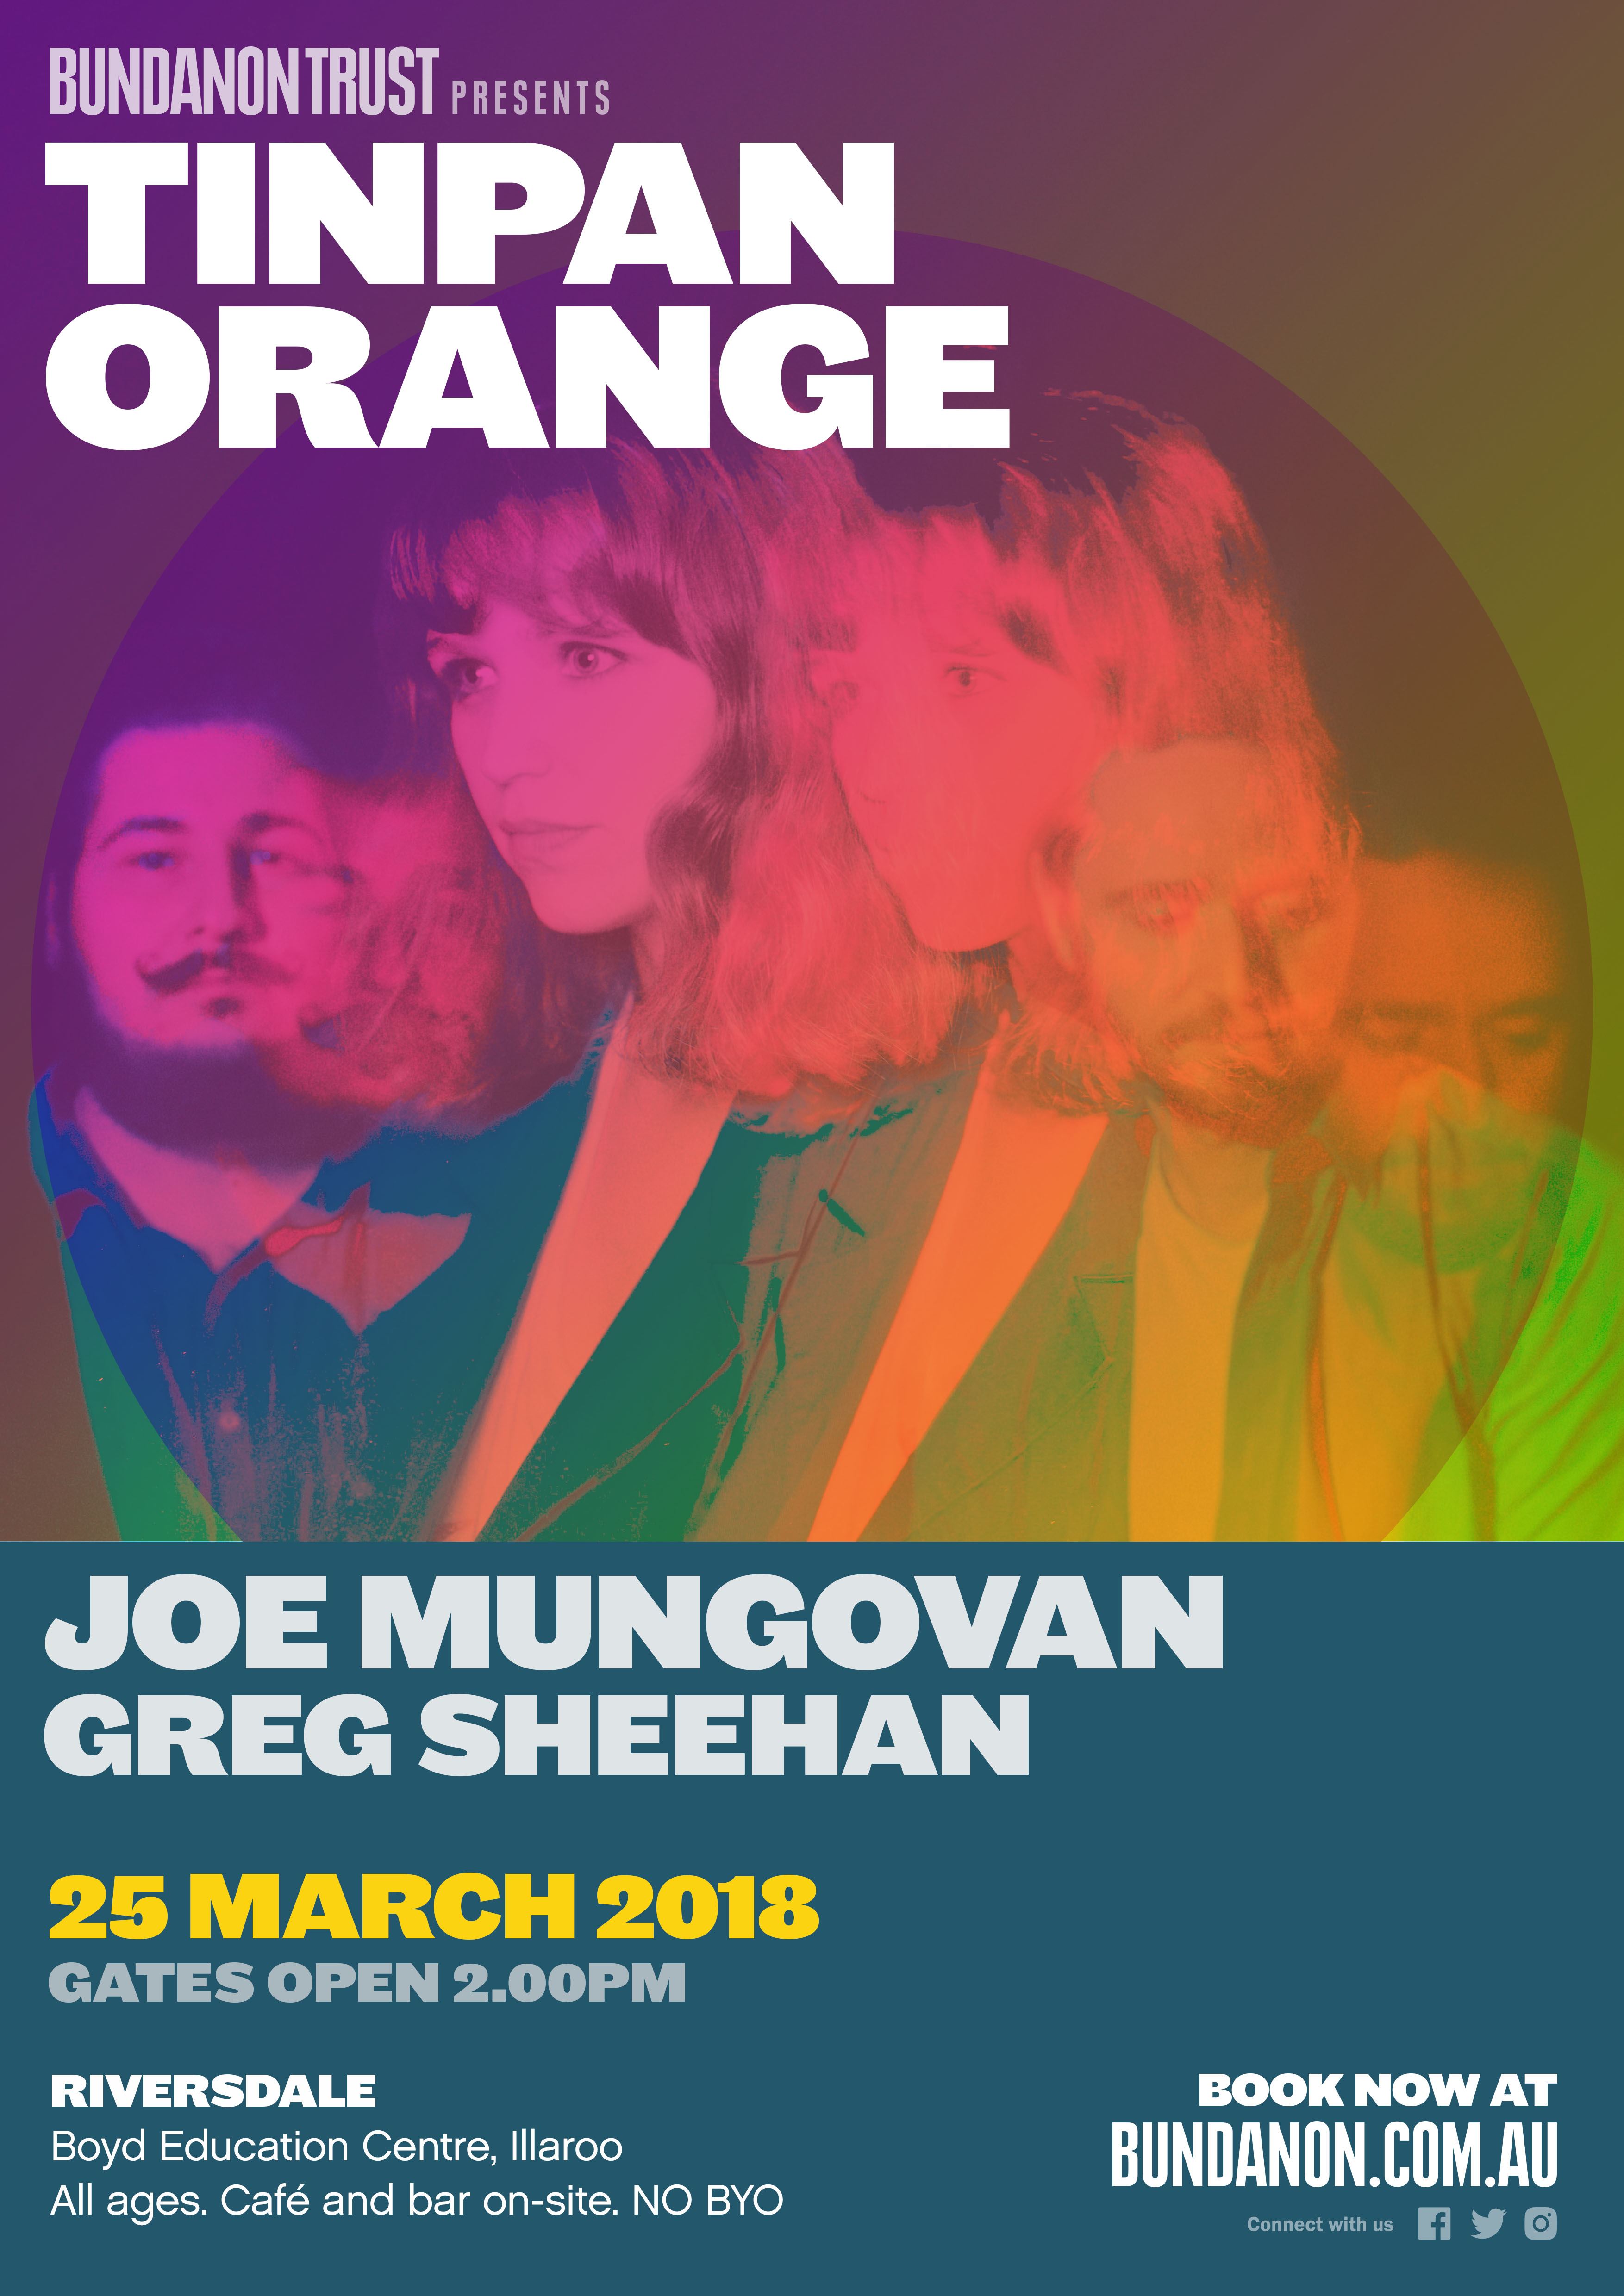 Tin Pan Orange + Joe Mungovan + Greg Sheehan @ Riversdale